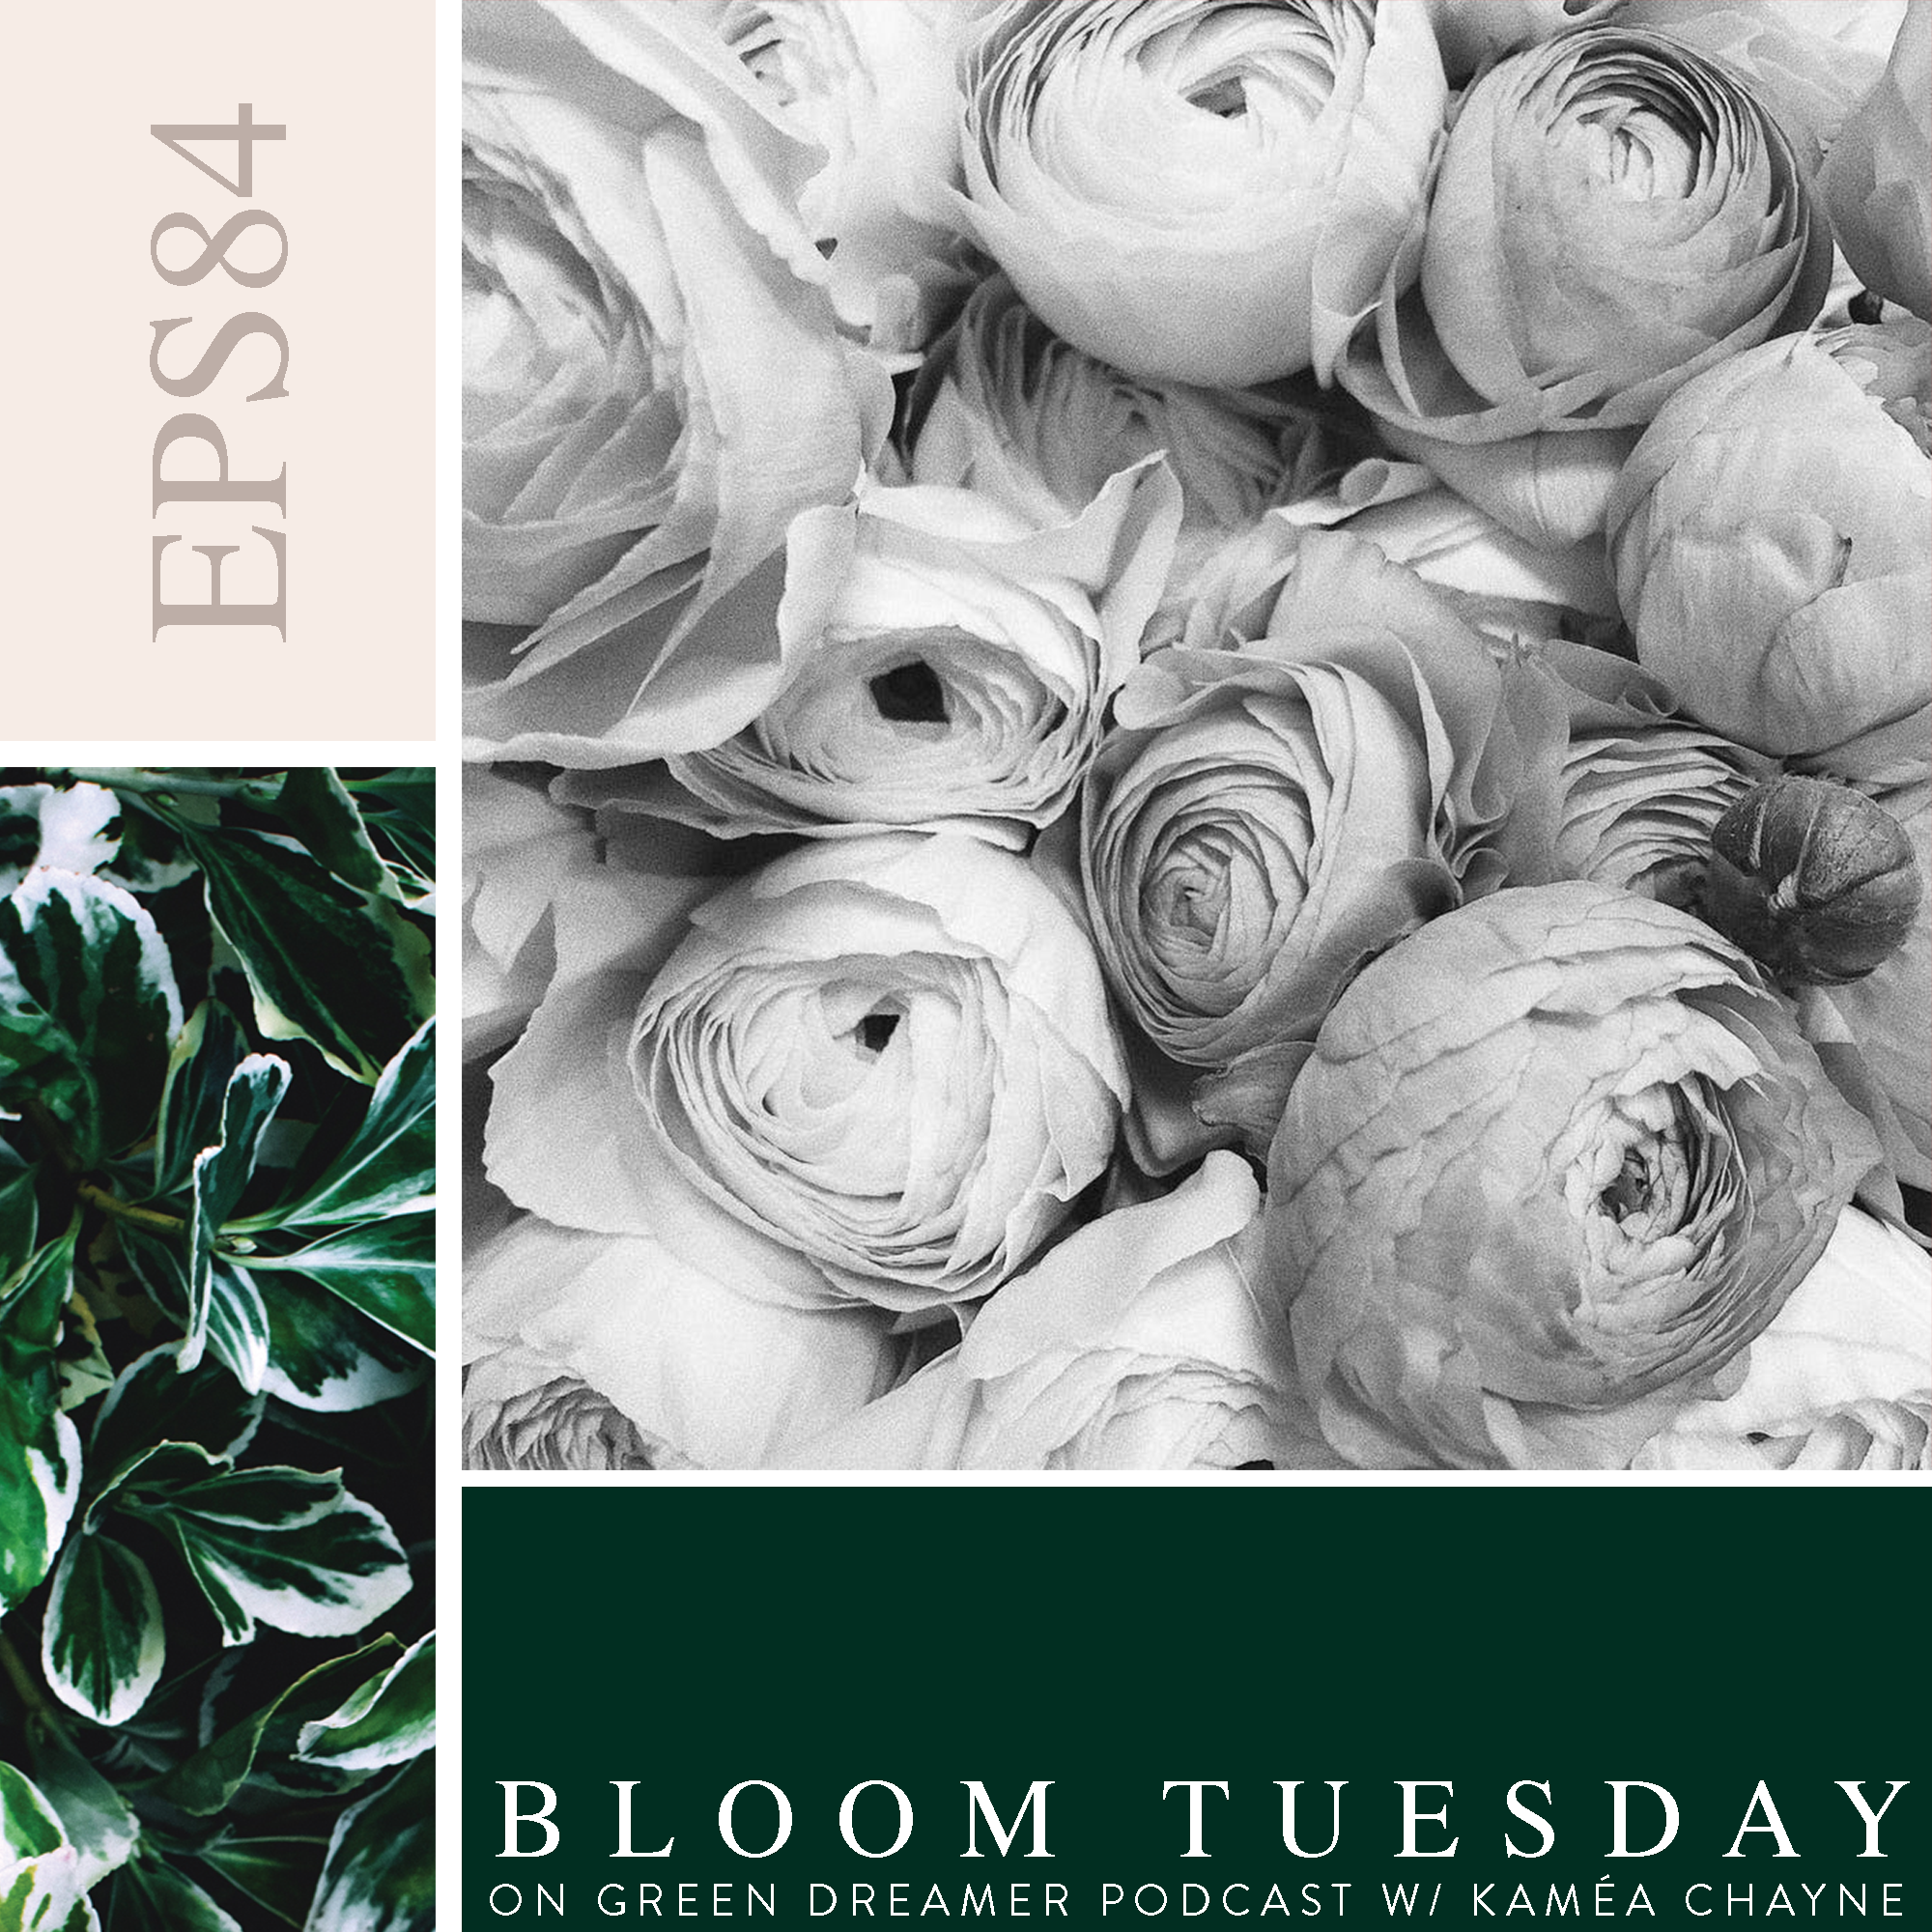 84) BLOOM TUESDAY